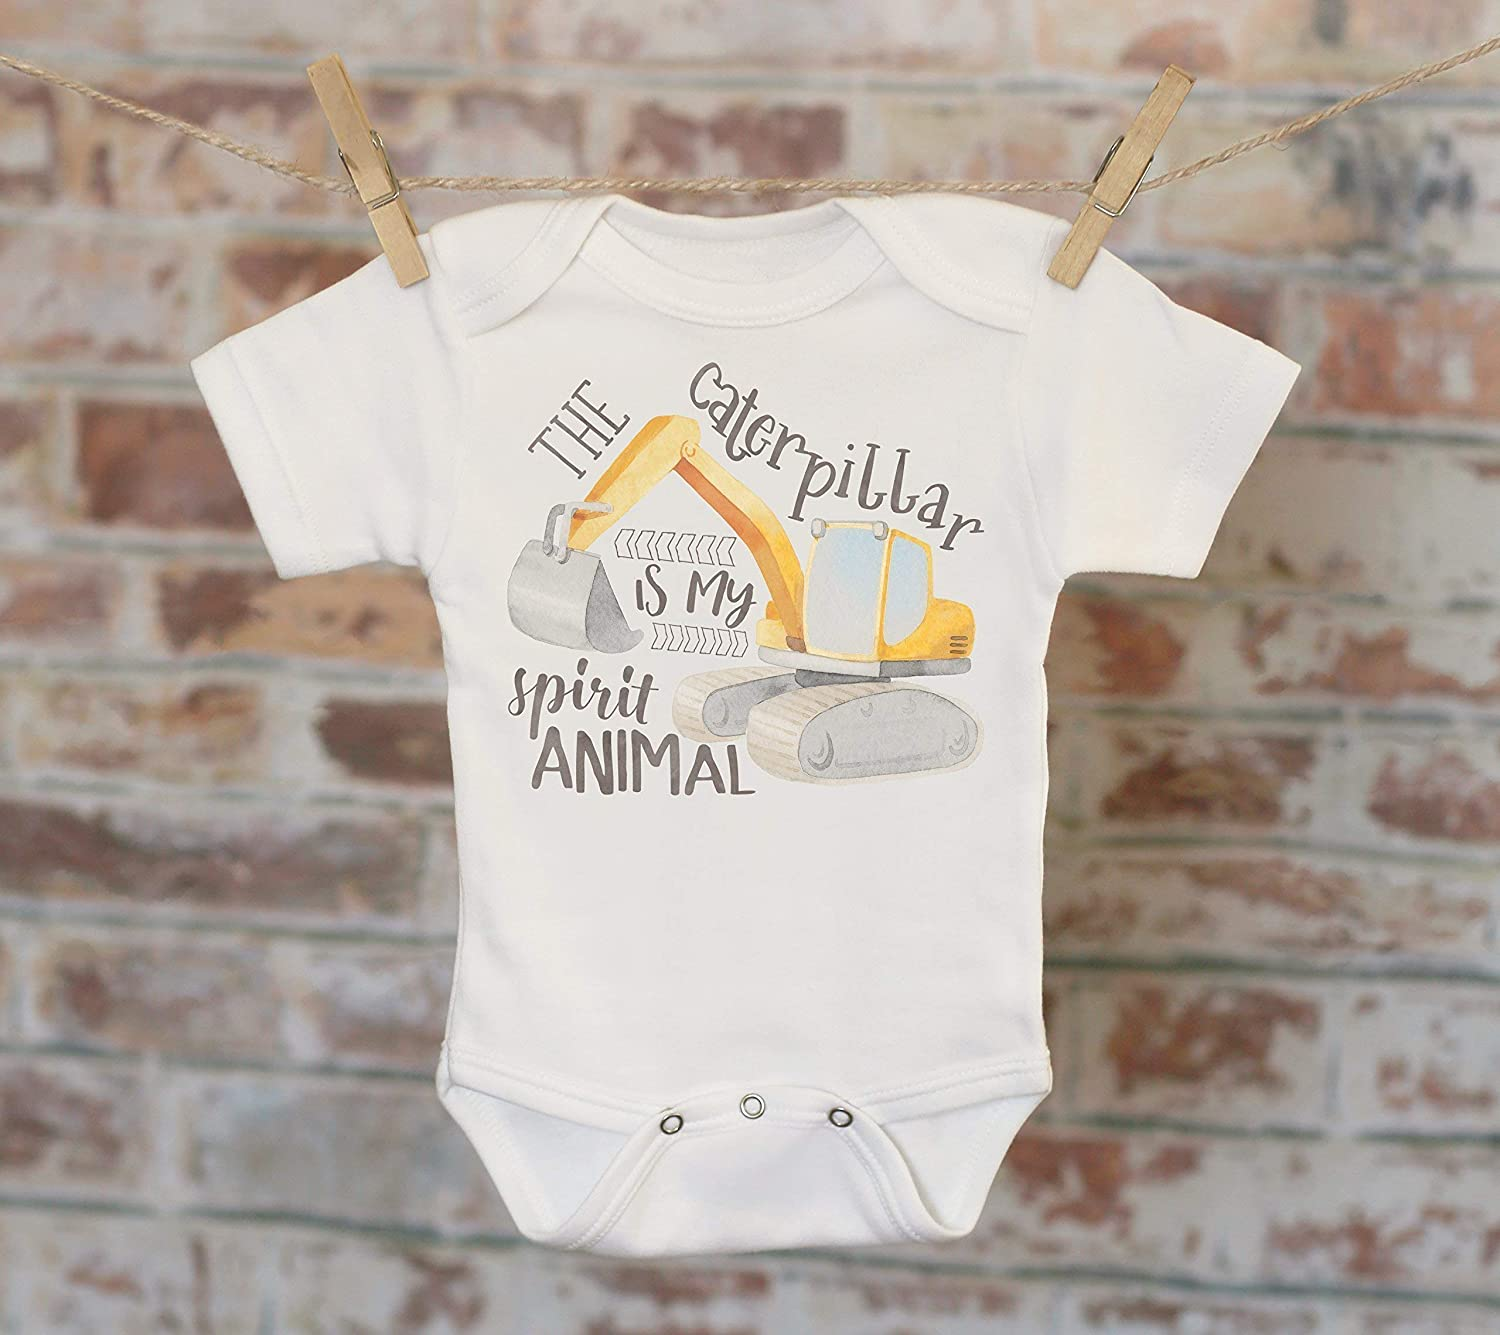 The Caterpillar Is My Spirit Animal Onesie®, Tractor Onesie, Funny Onesie, Cute Onesie, Cute Baby Bodysuit, Boho Baby Onesie